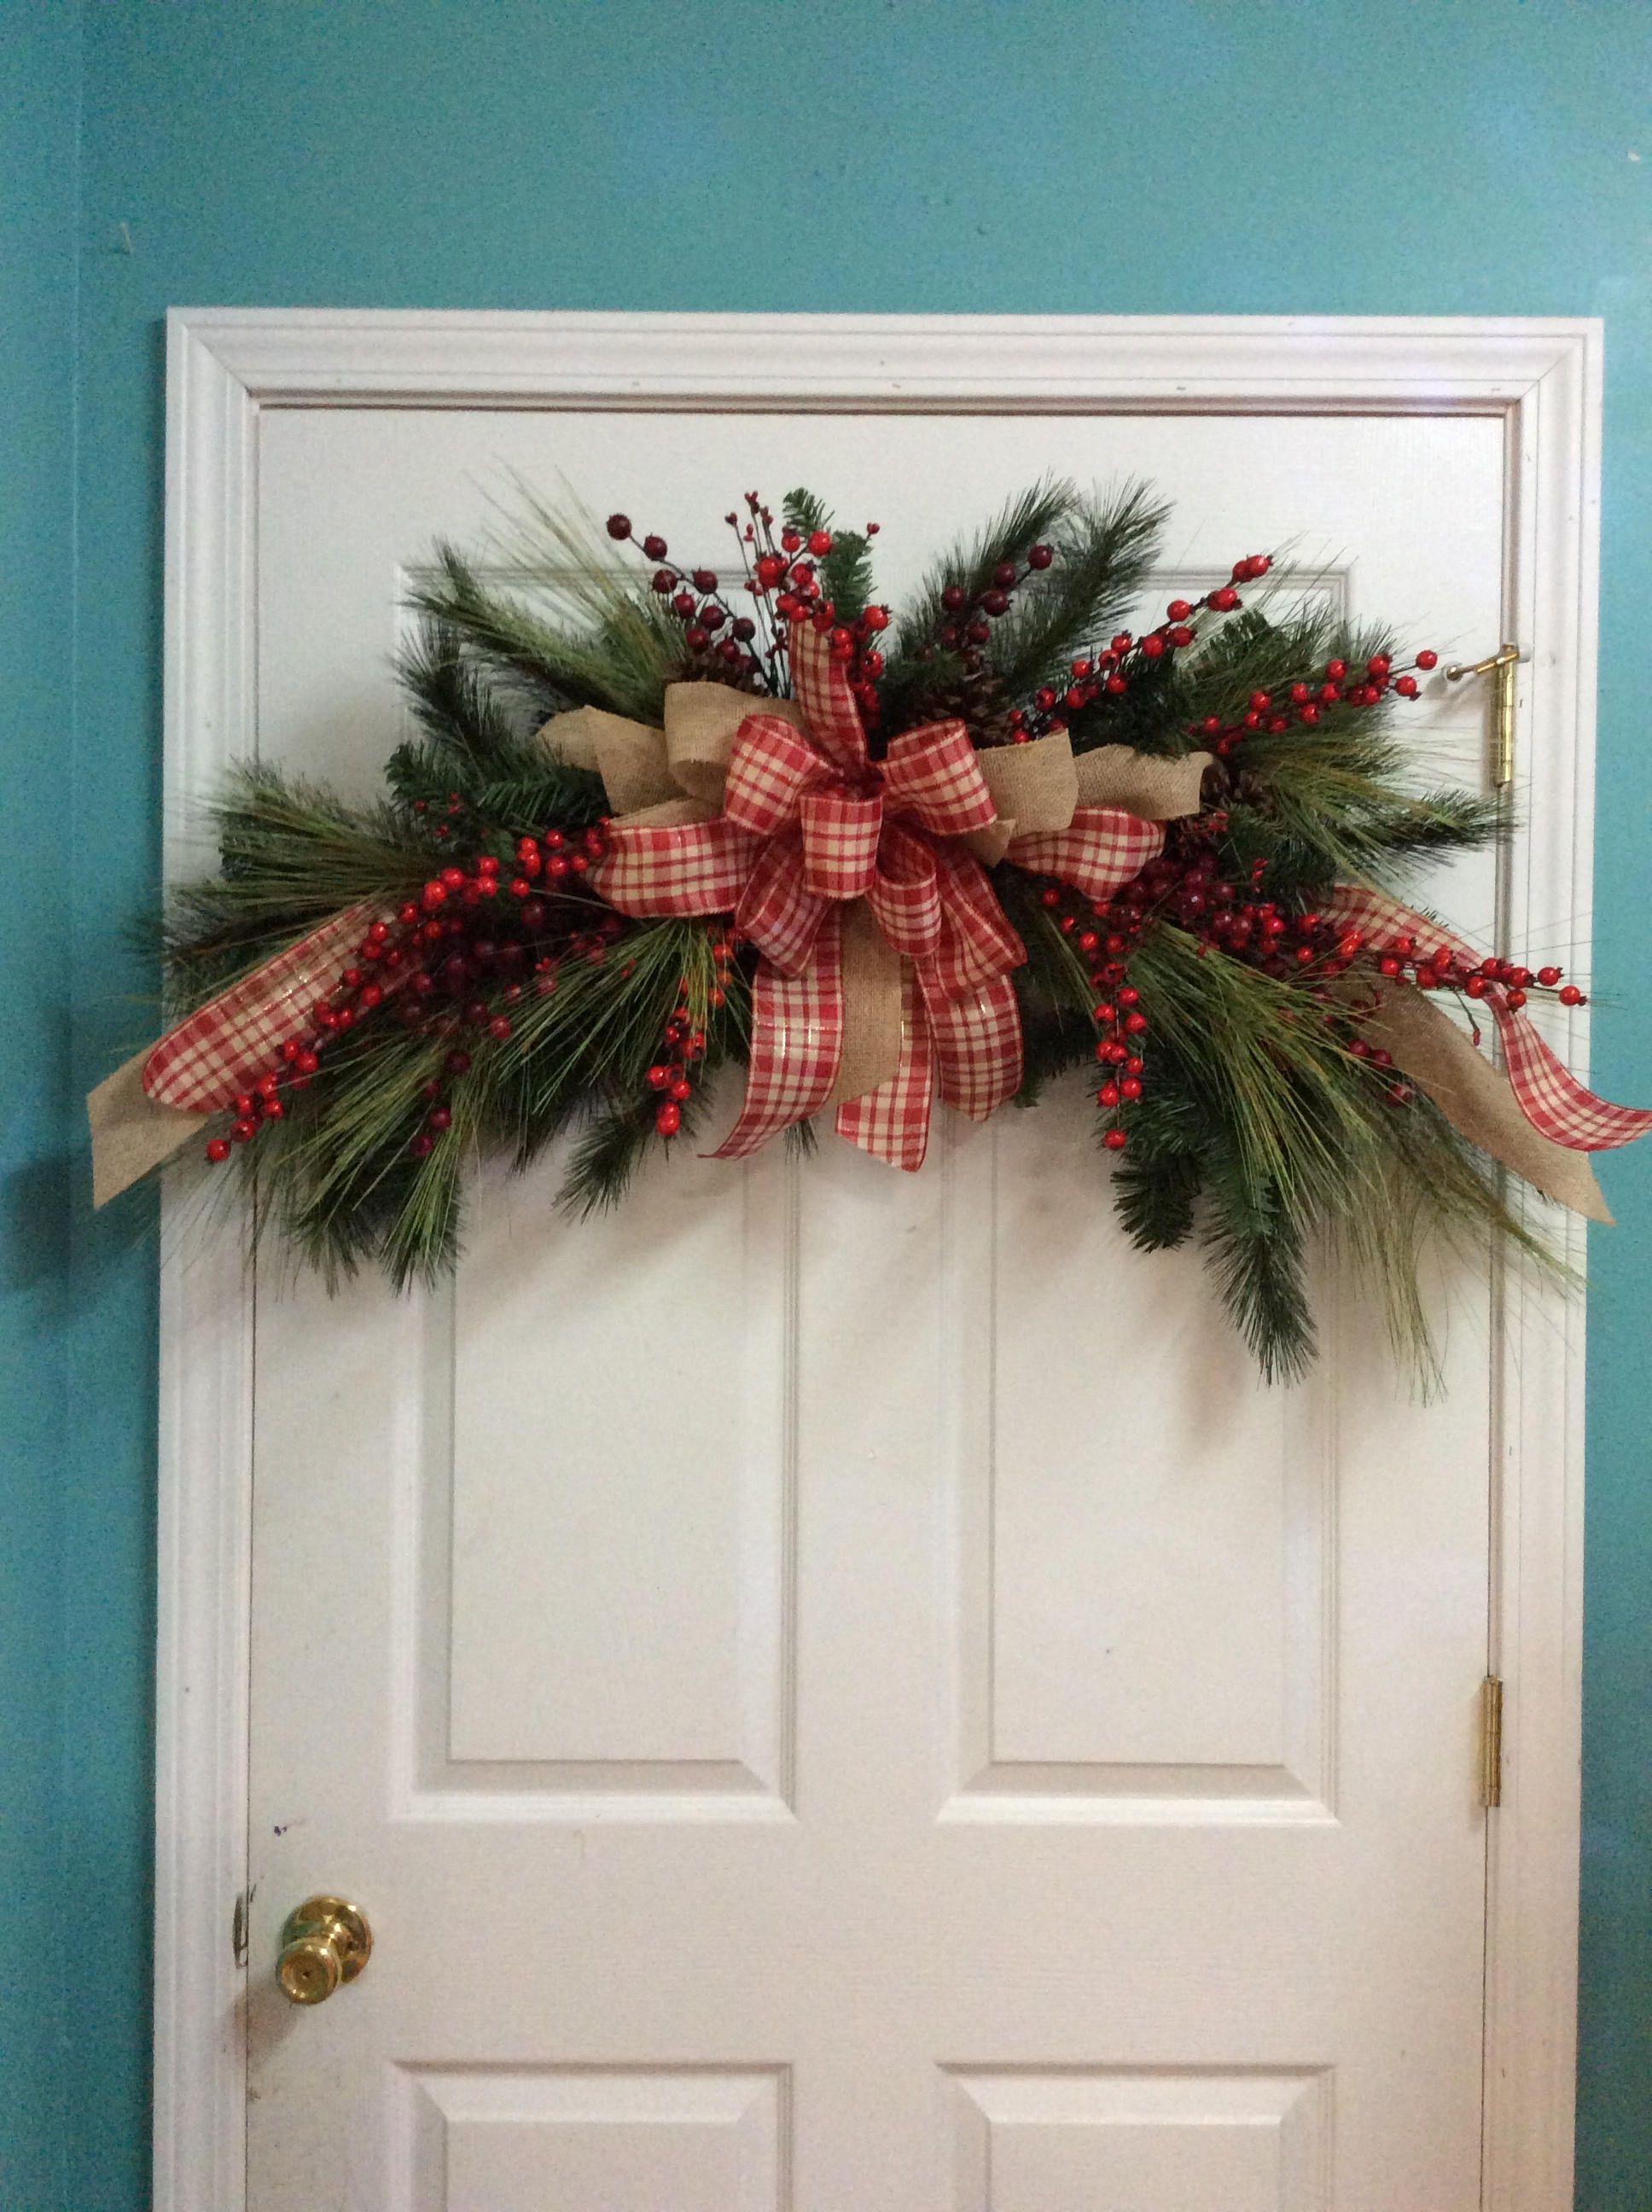 Door Christmas Garland Country Pine And Berry Swag Red Berry Door Garland Farmhouse Door Arch Christmas Wreaths Diy Christmas Garland Christmas Porch Decor